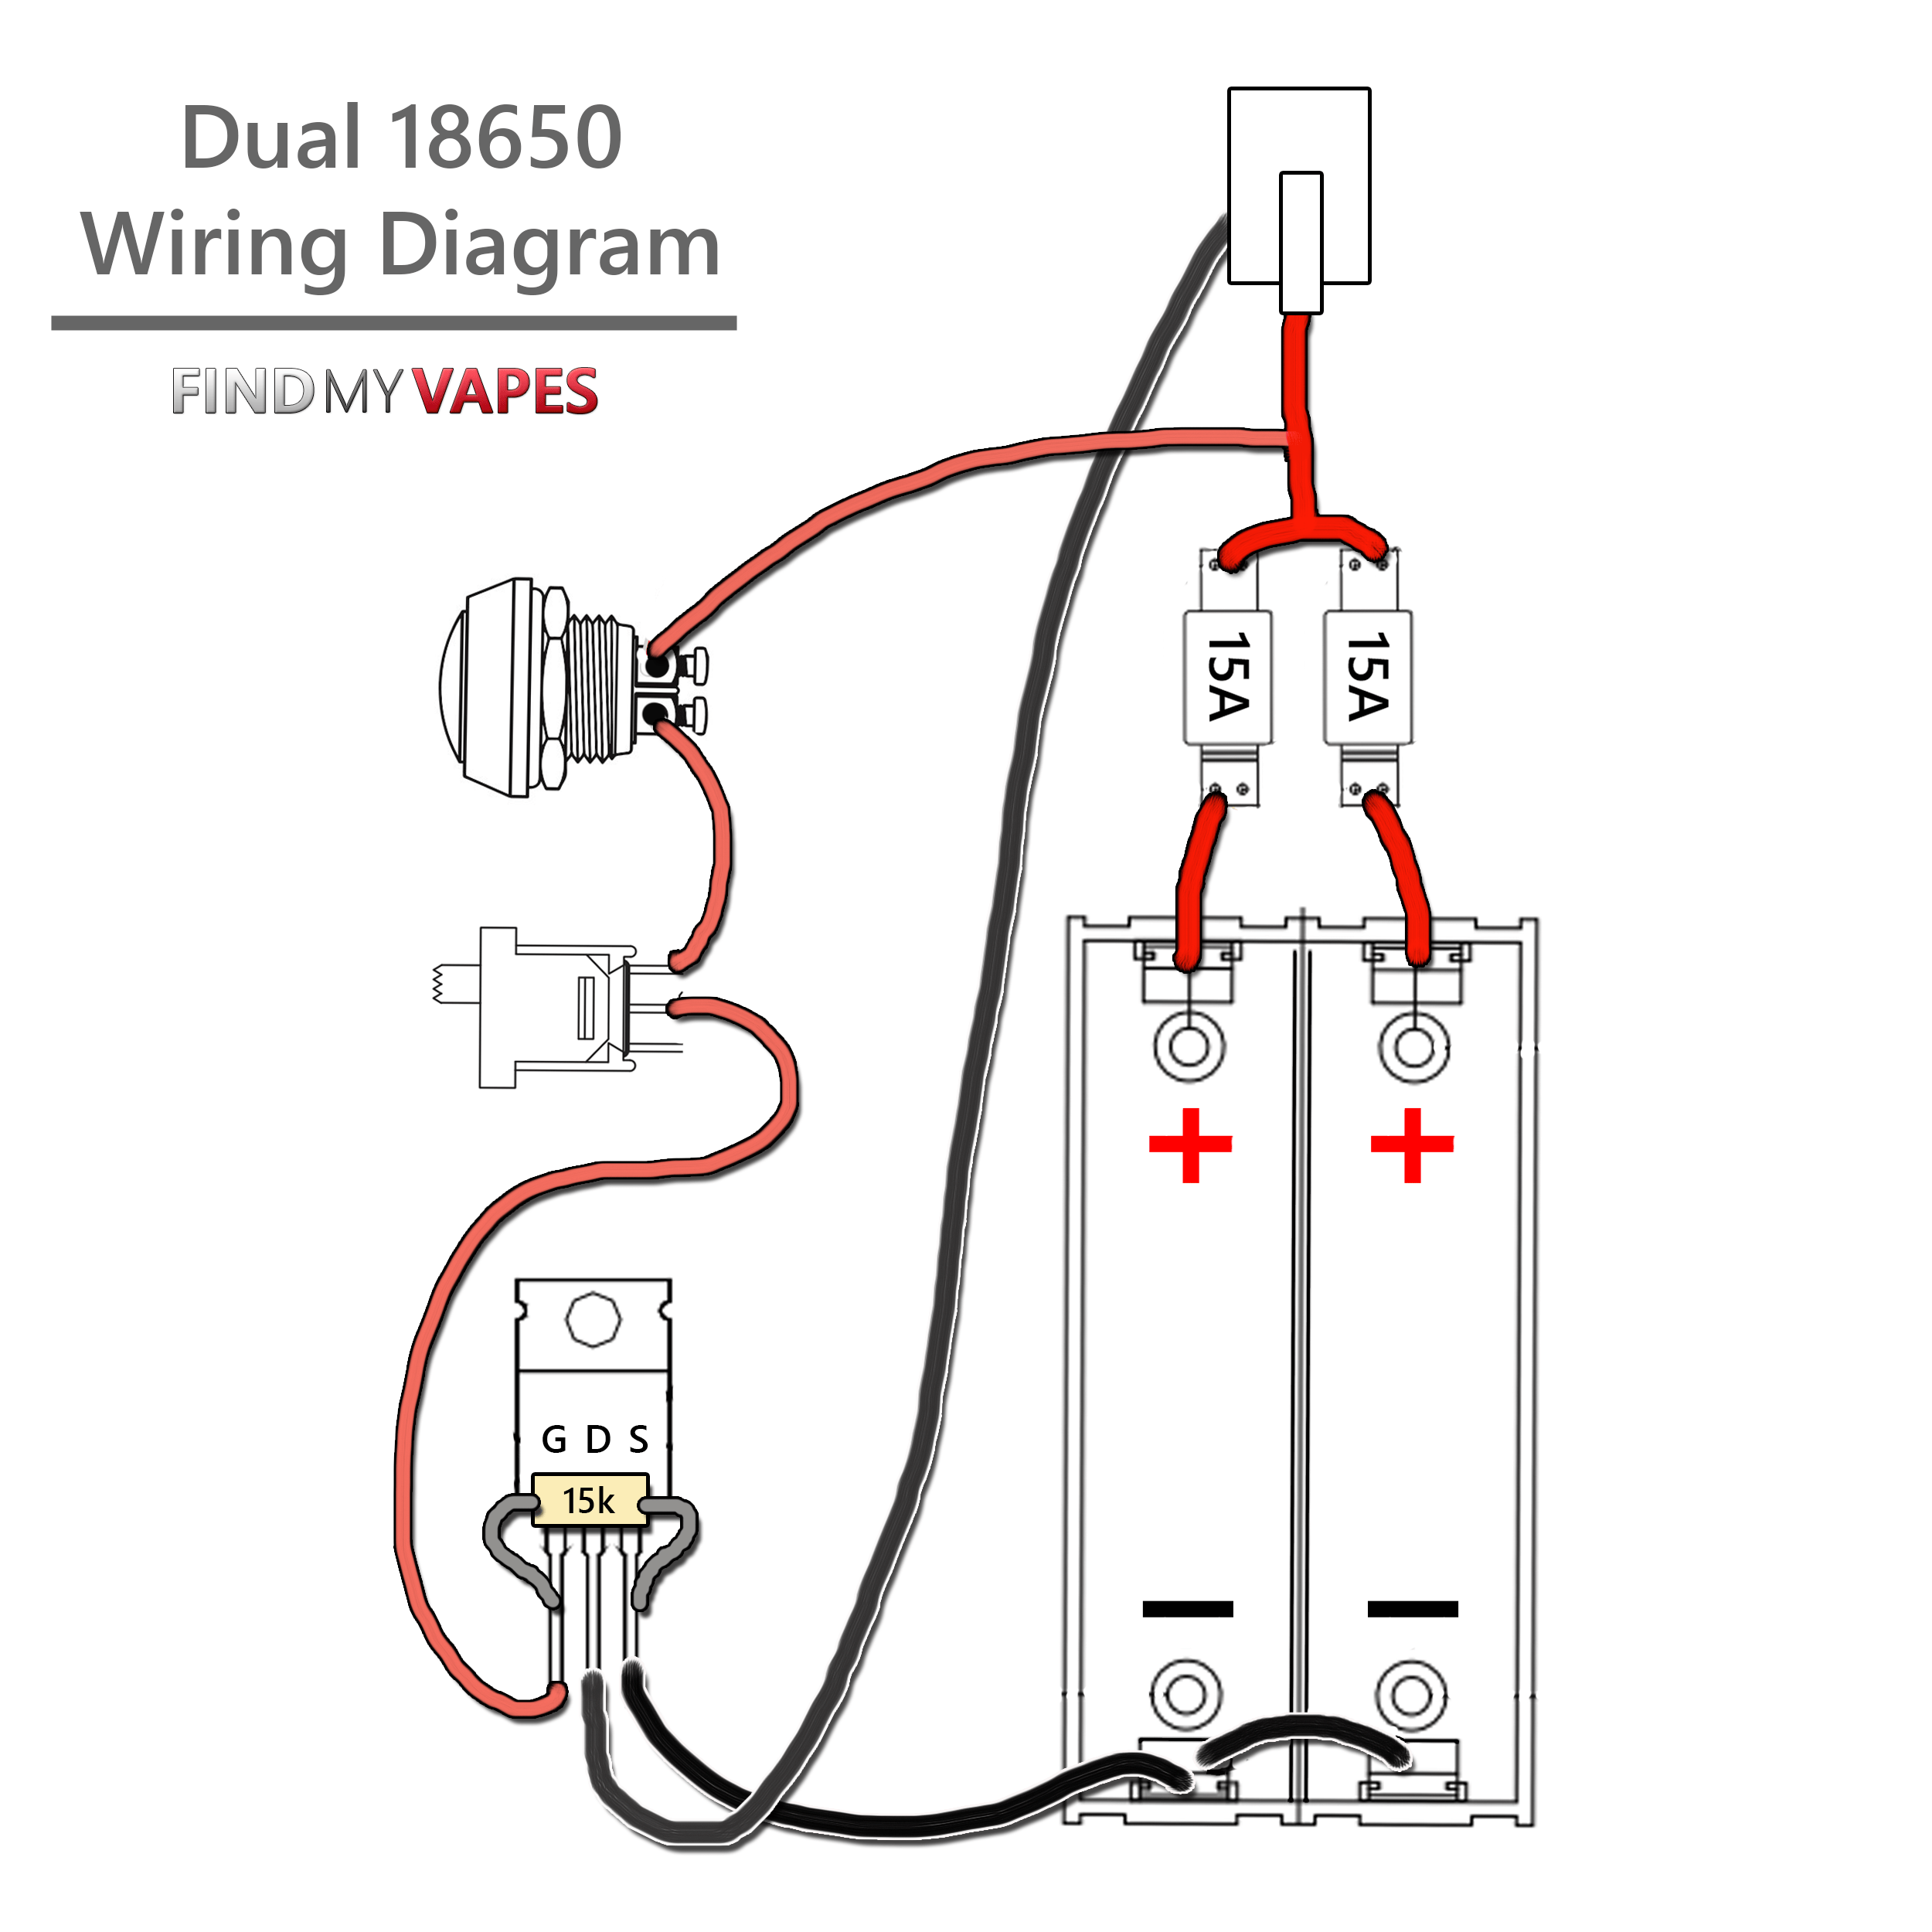 Dna 200 Balance Charger Wiring Diagram For Dual